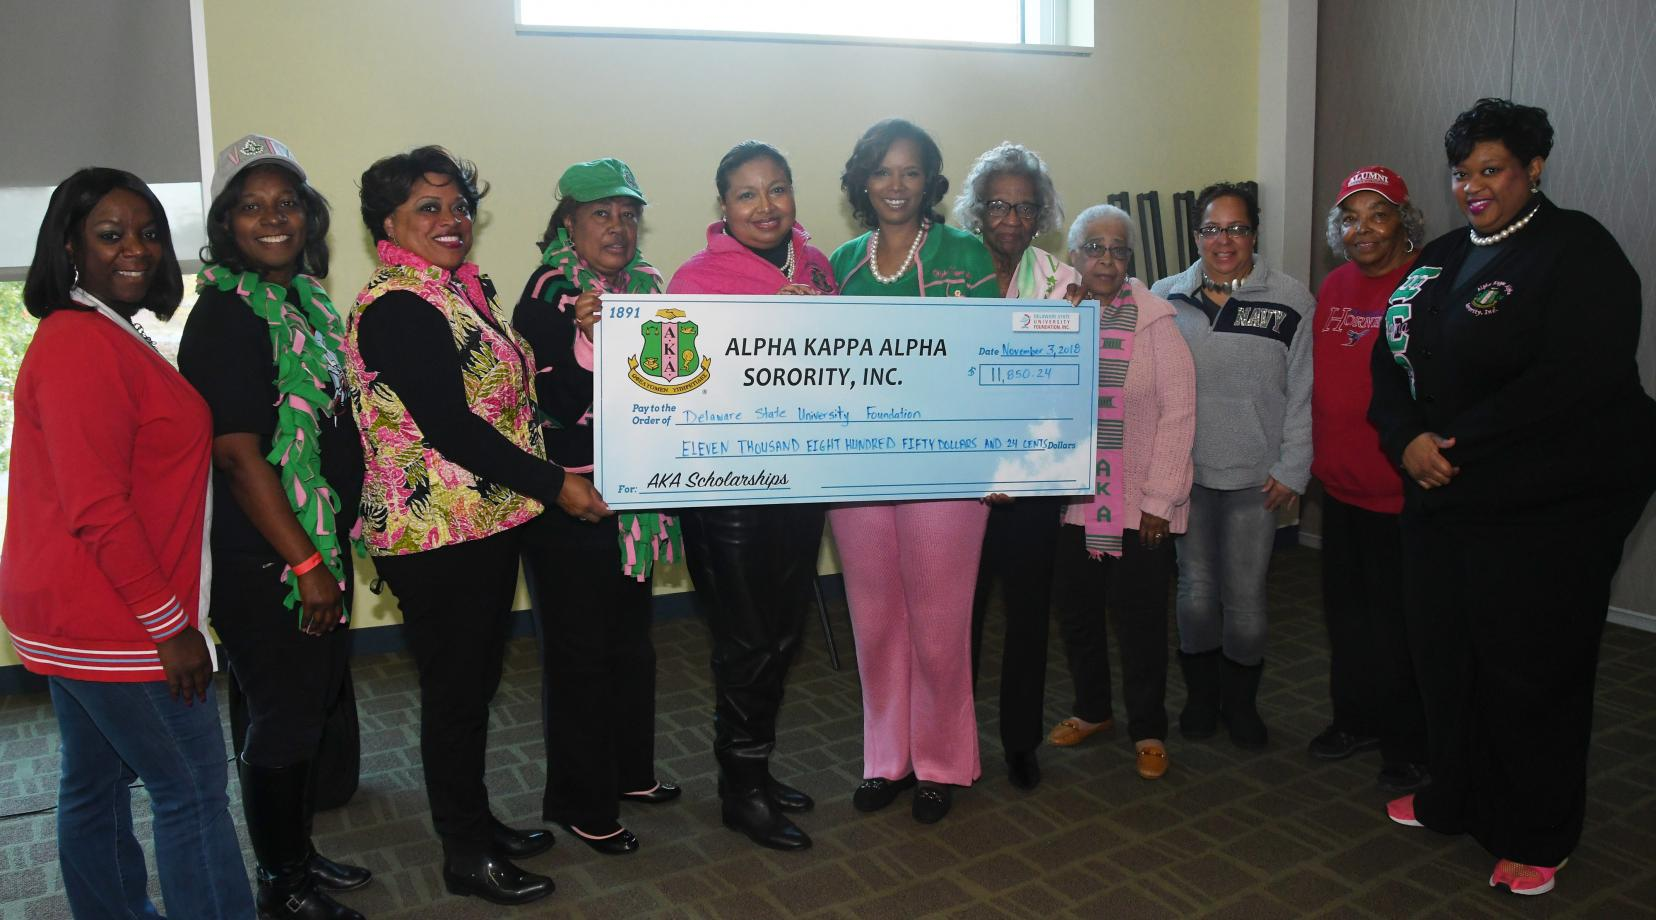 Alpha Kappa Alpha members representing Delaware chapters in Wilmington, Newark and Dover, came together to present a scholarship donation of more than $11,850 to the University.